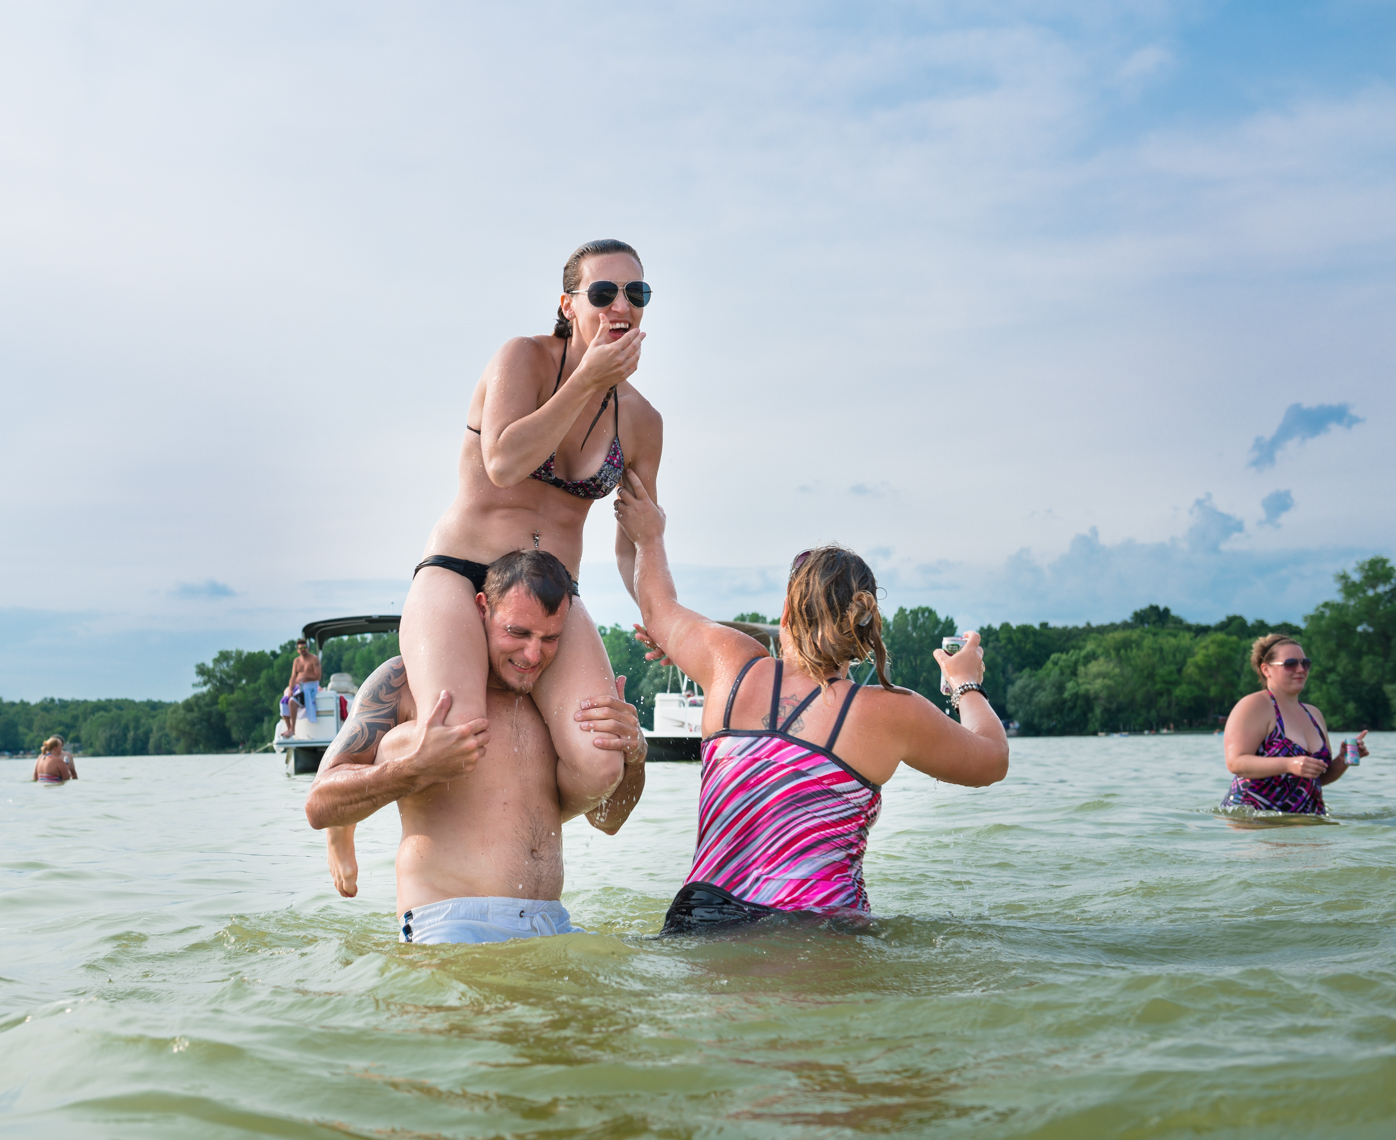 Young couple, laughing, lifestyle, smiling, real beauty, happy, plus size, confident, summer fun, lake party real people, liquor, travel, Madison, Chicago, Nashville advertising lifestyle photographer Kristina Krug